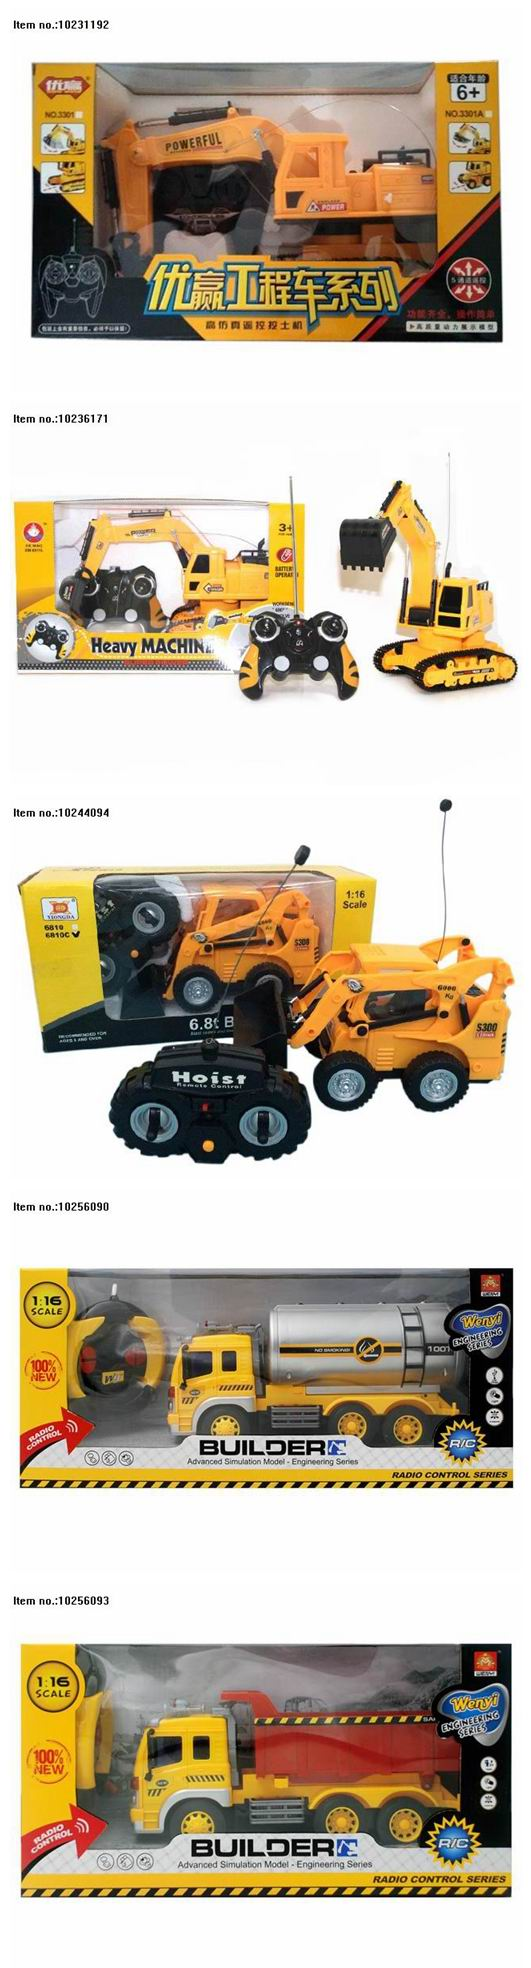 4 Channel Remote Control Excavator Toys with USB for Children